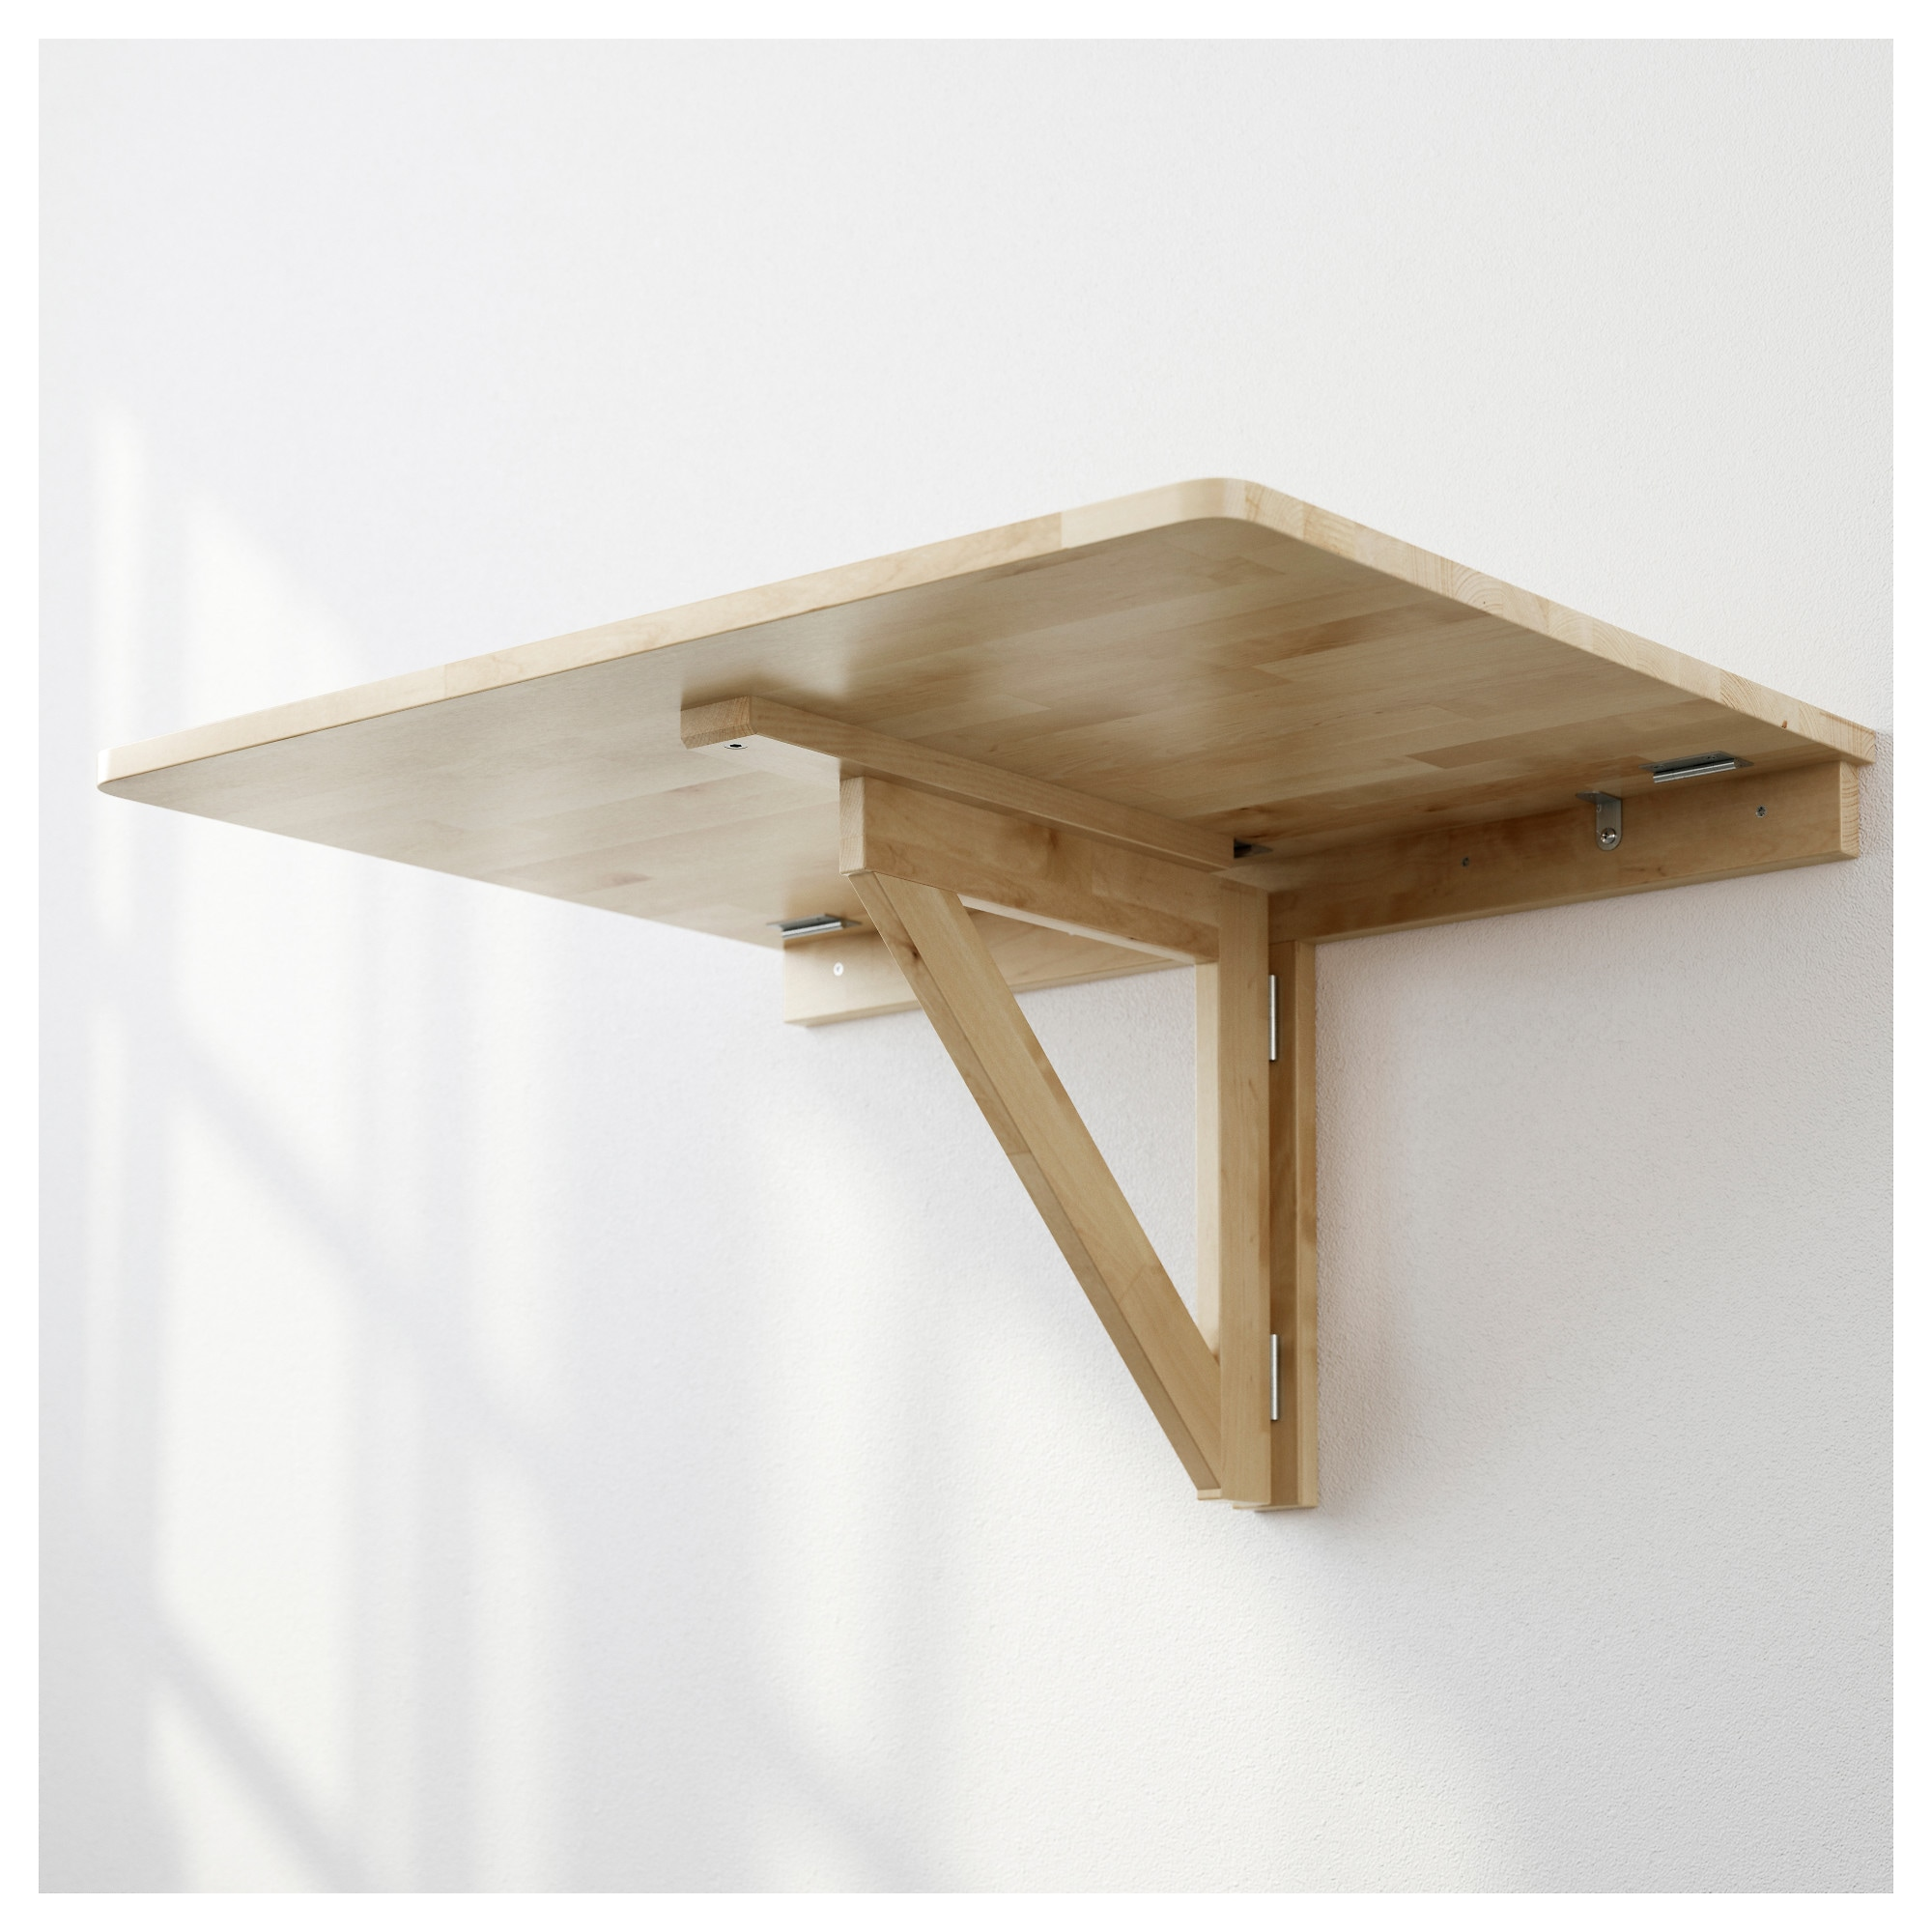 Wall Mounted Drop Leaf Tables on vaporbullfl